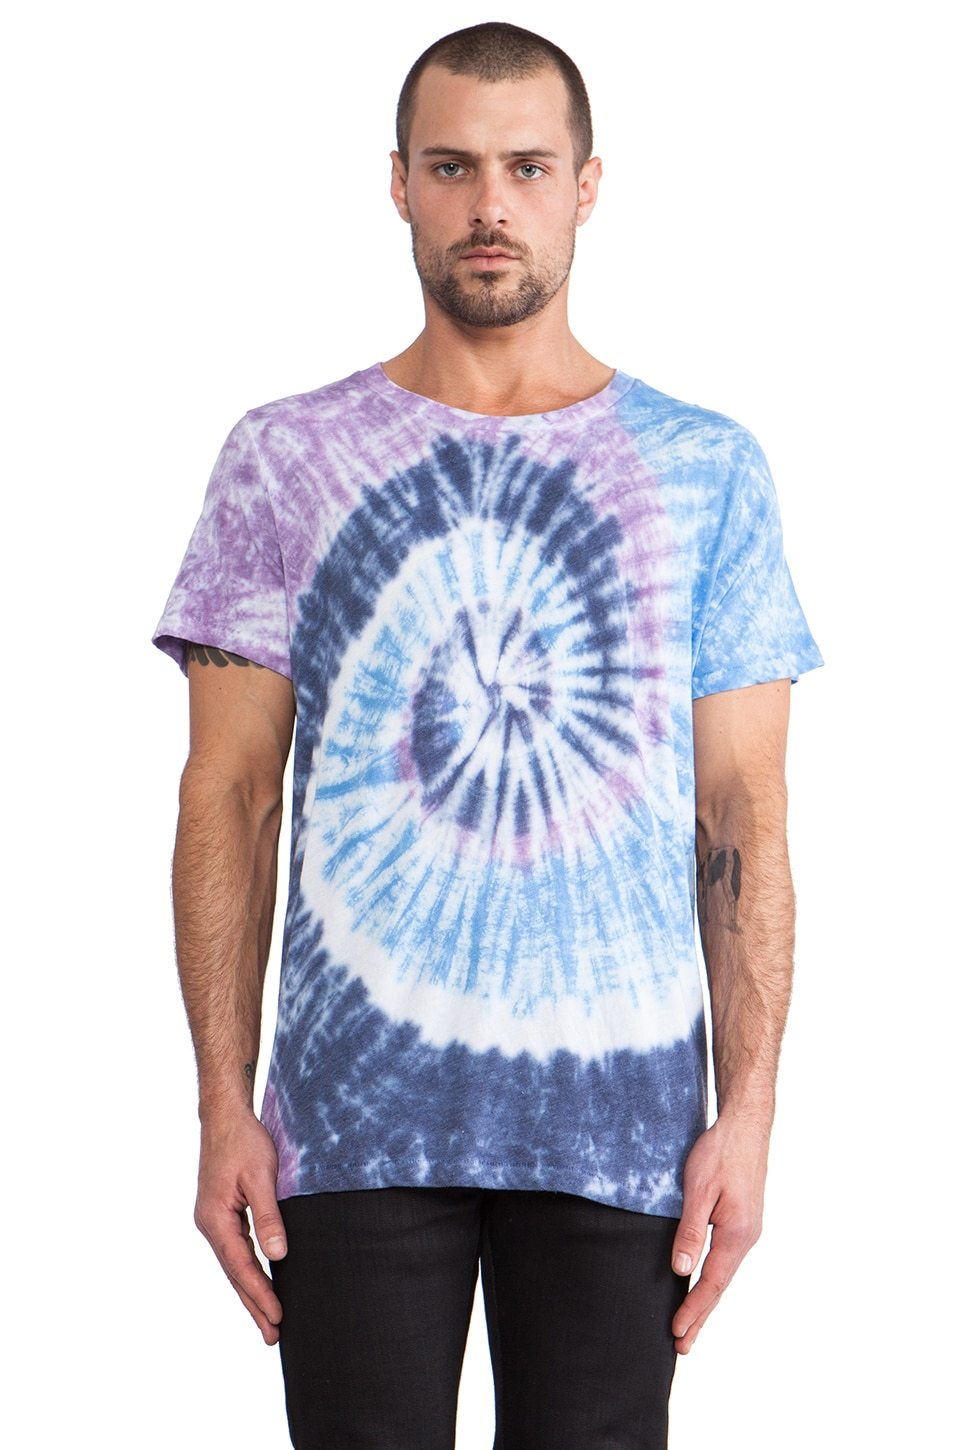 Cast of Vices Tie Dye Tshirt in Purple & Pink